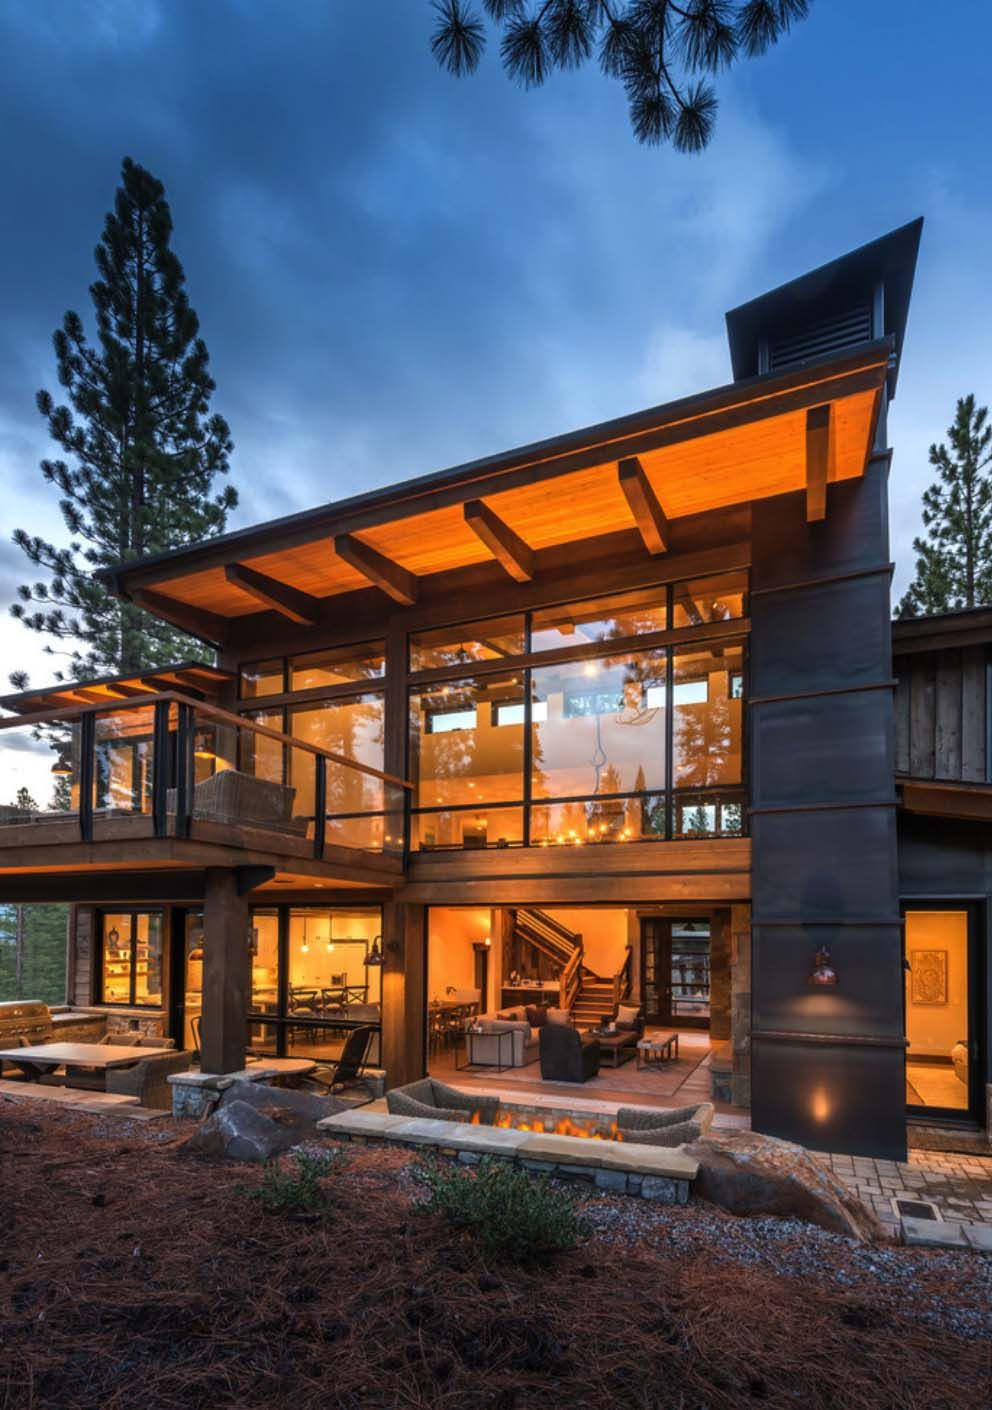 Woodsy Mountain Cabin In Martis Camp Blends Modern With Rustic Mountain Home Exterior Contemporary House Exterior Contemporary Mountain Home